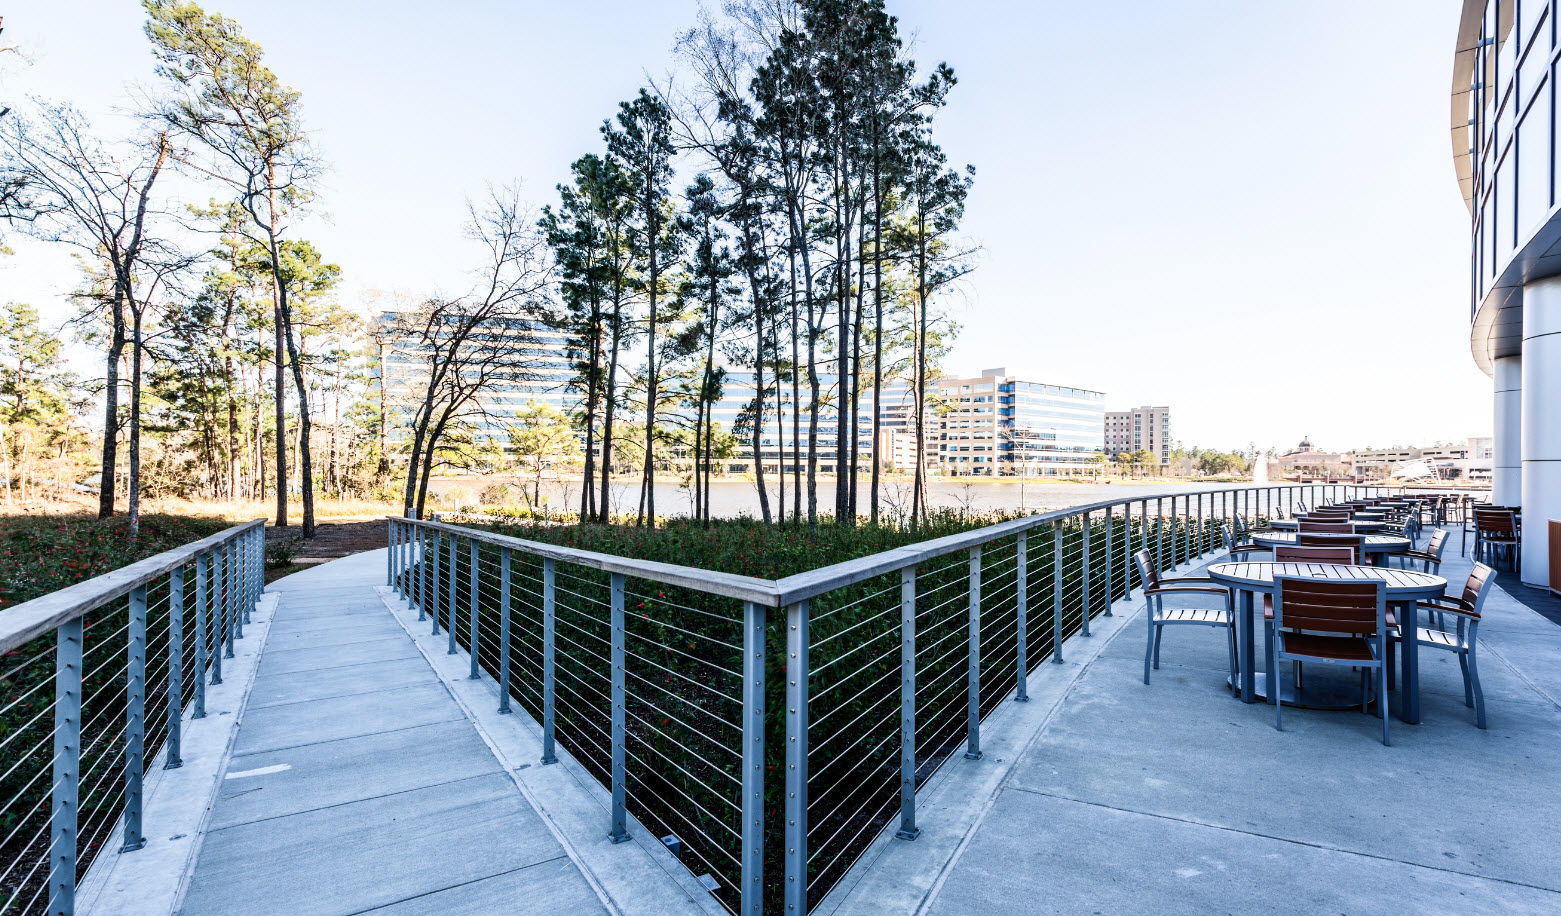 Cable railing on concrete ramp - The Woodlands, TX